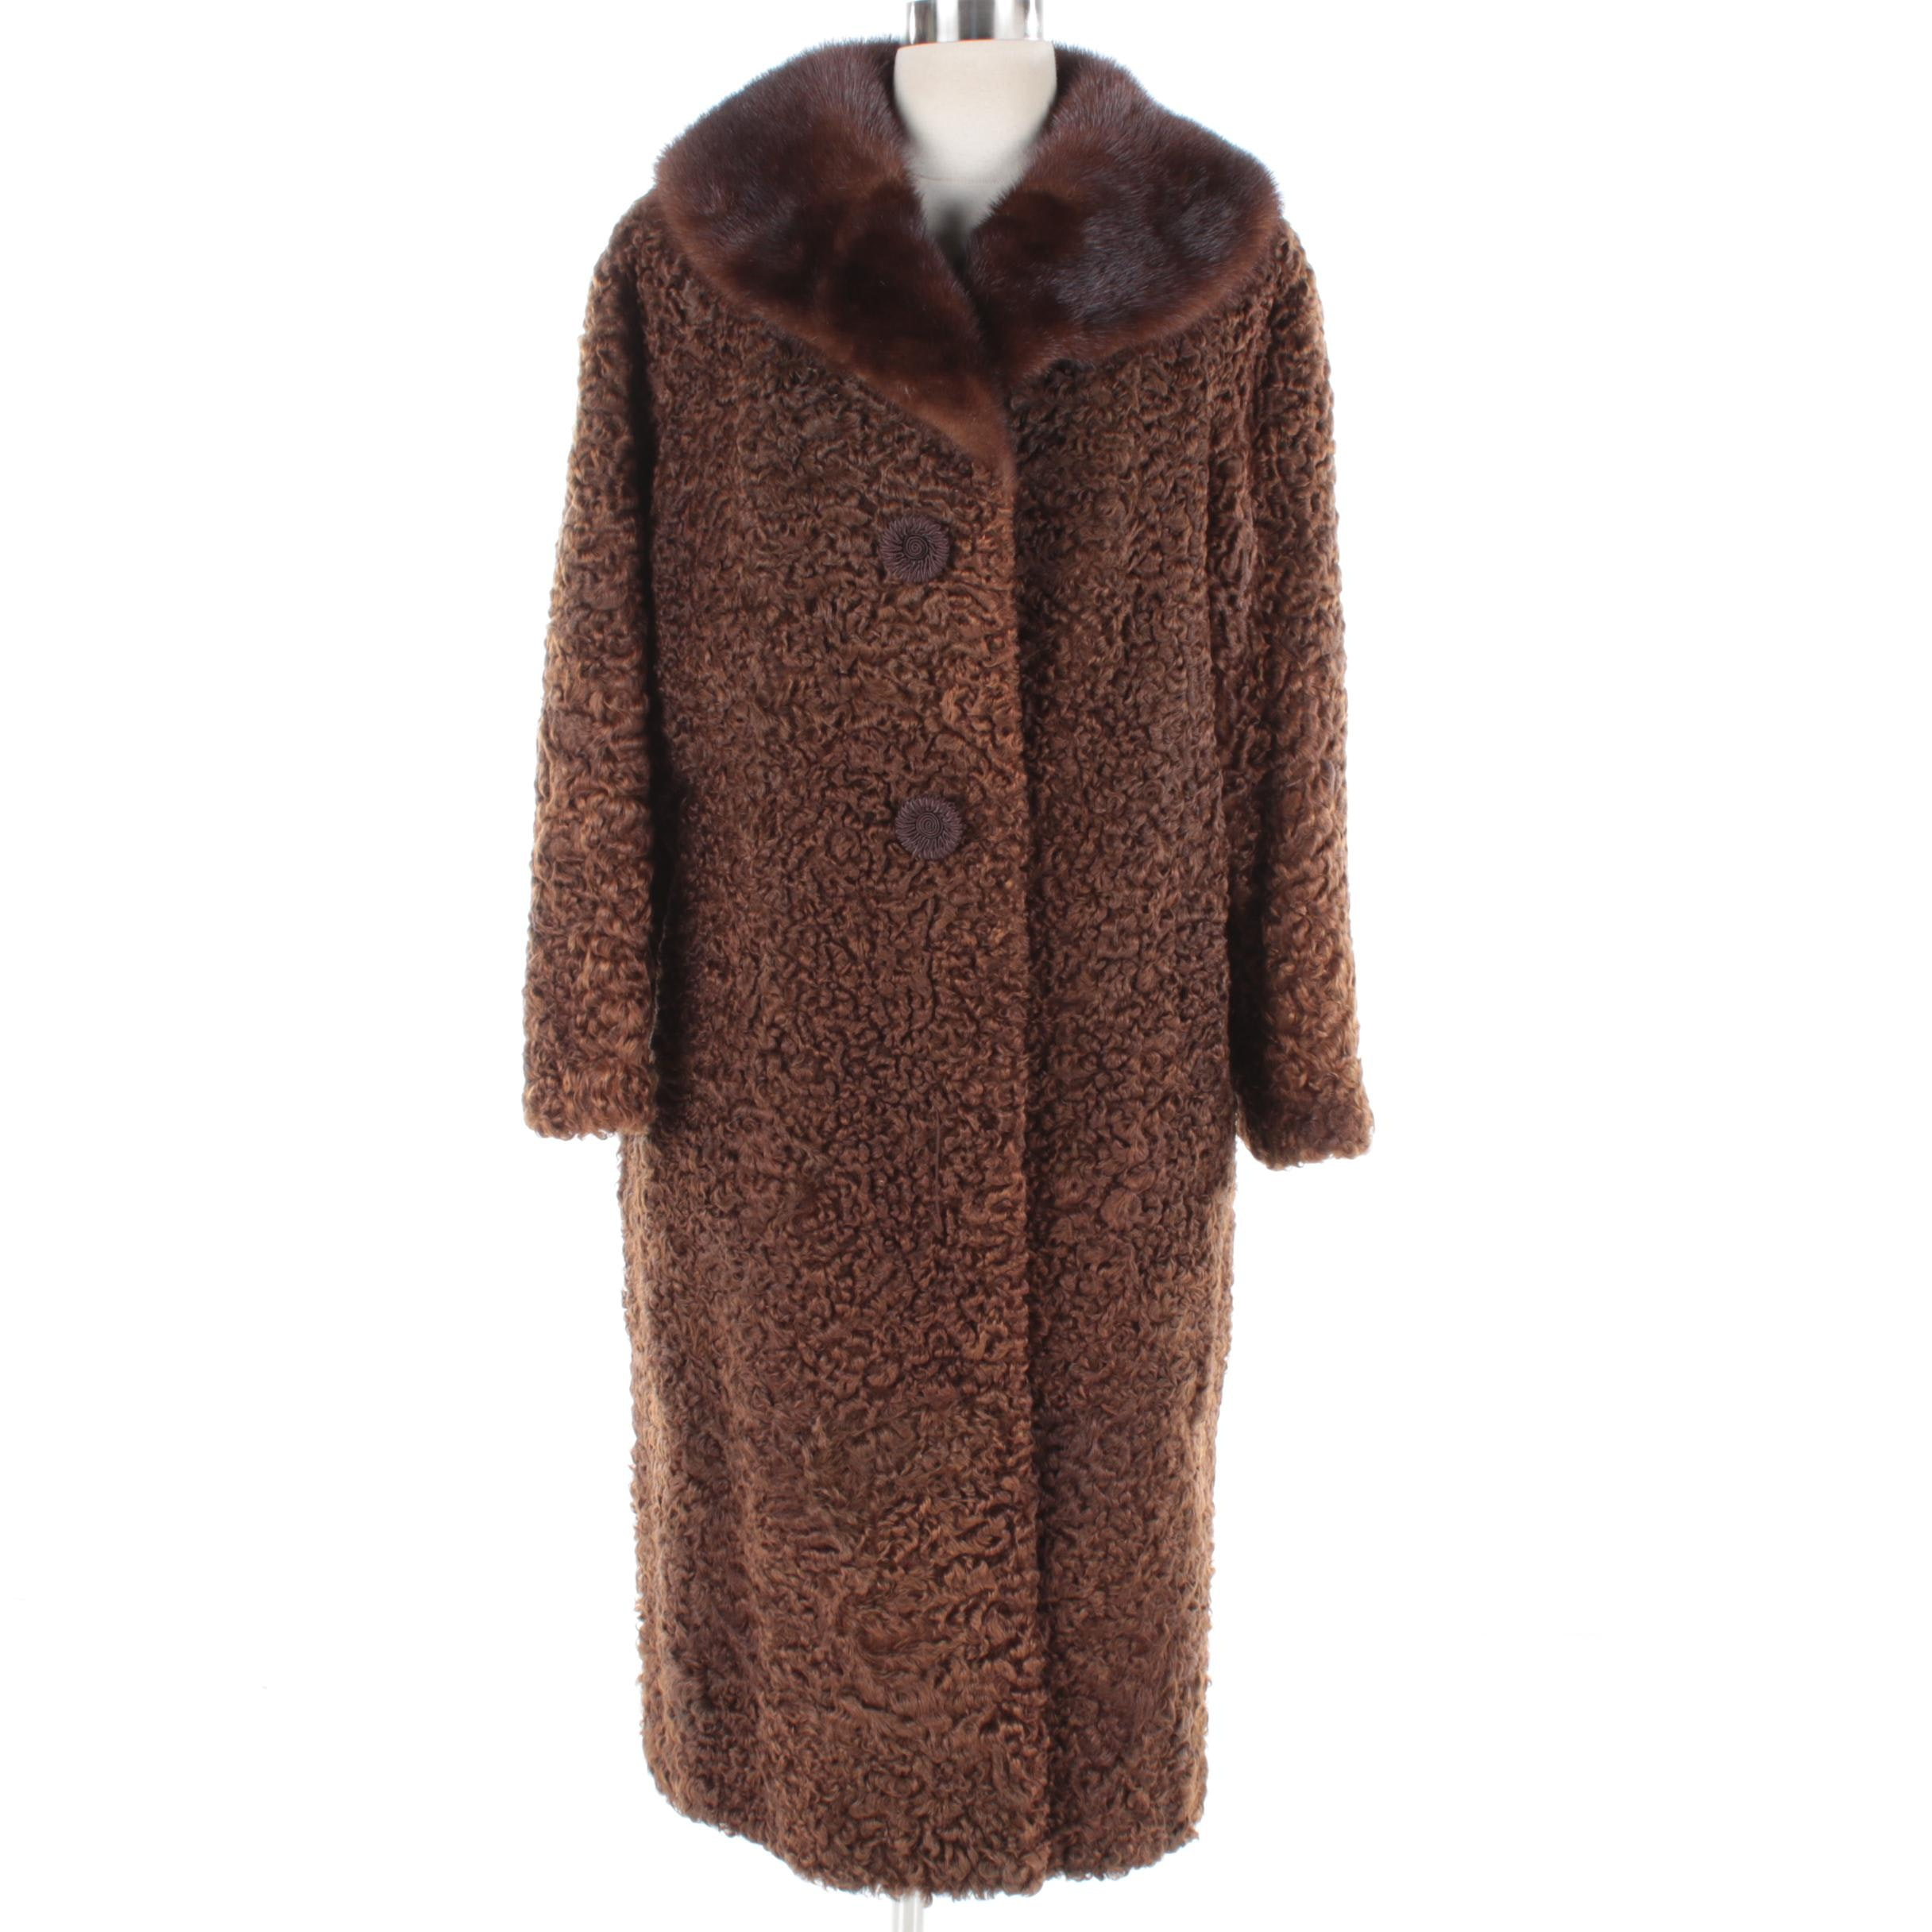 Vintage Persian Lamb Coat with Mink Fur Collar